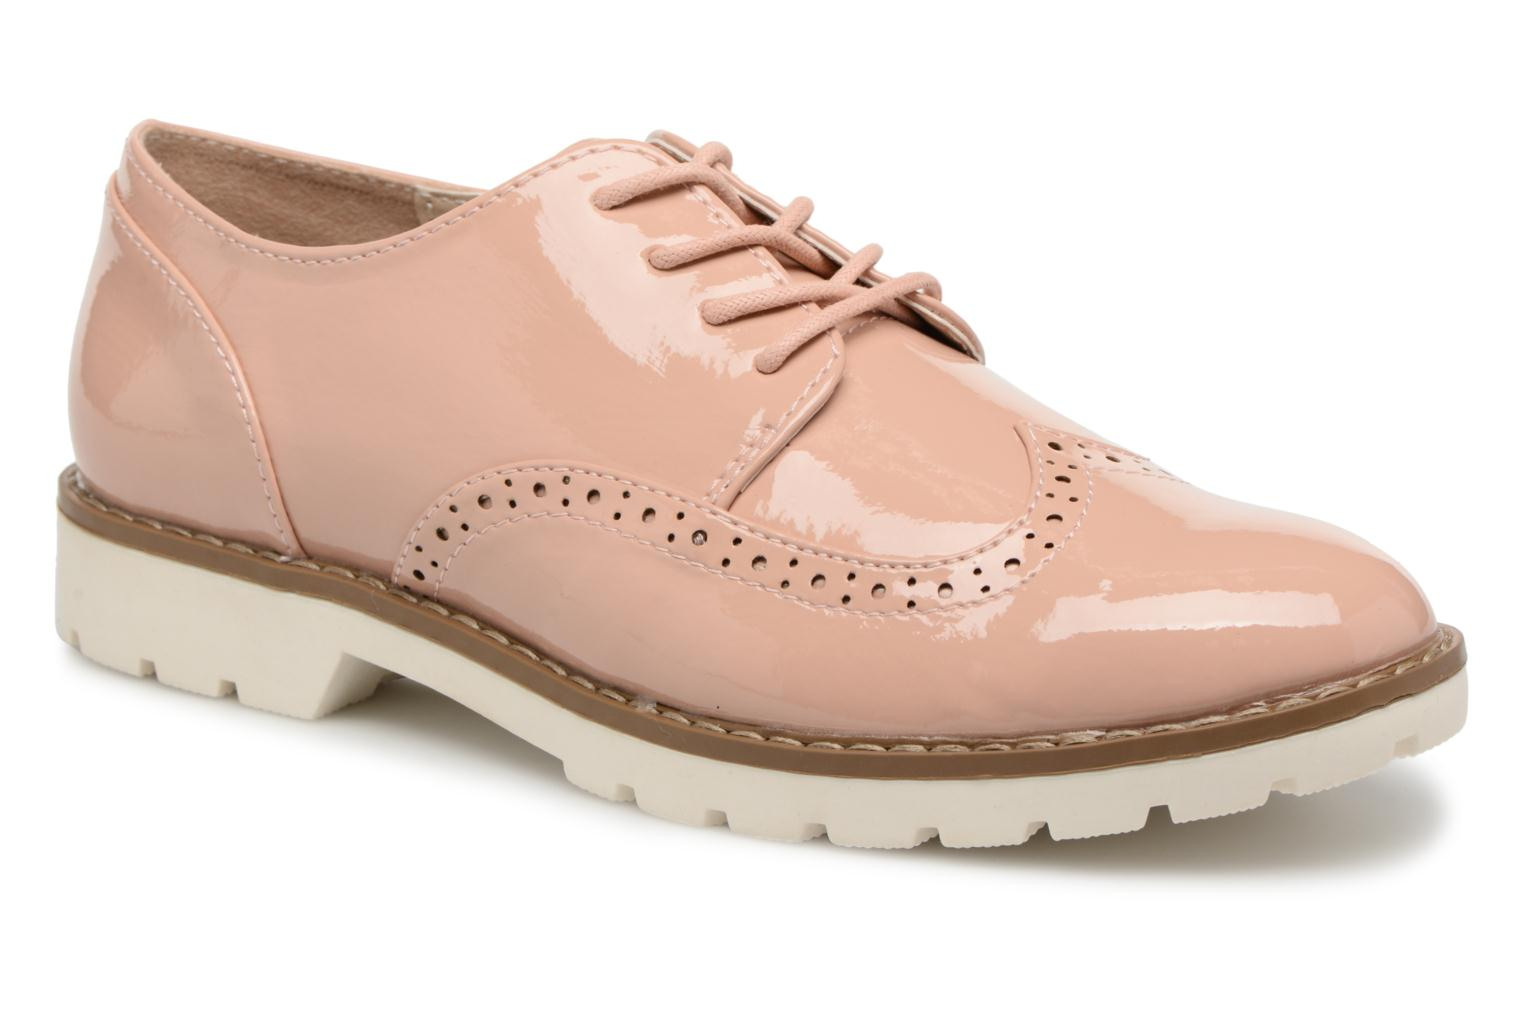 Thasty - Chaussures À Lacets Pour Dames / Rose I Love Shoes